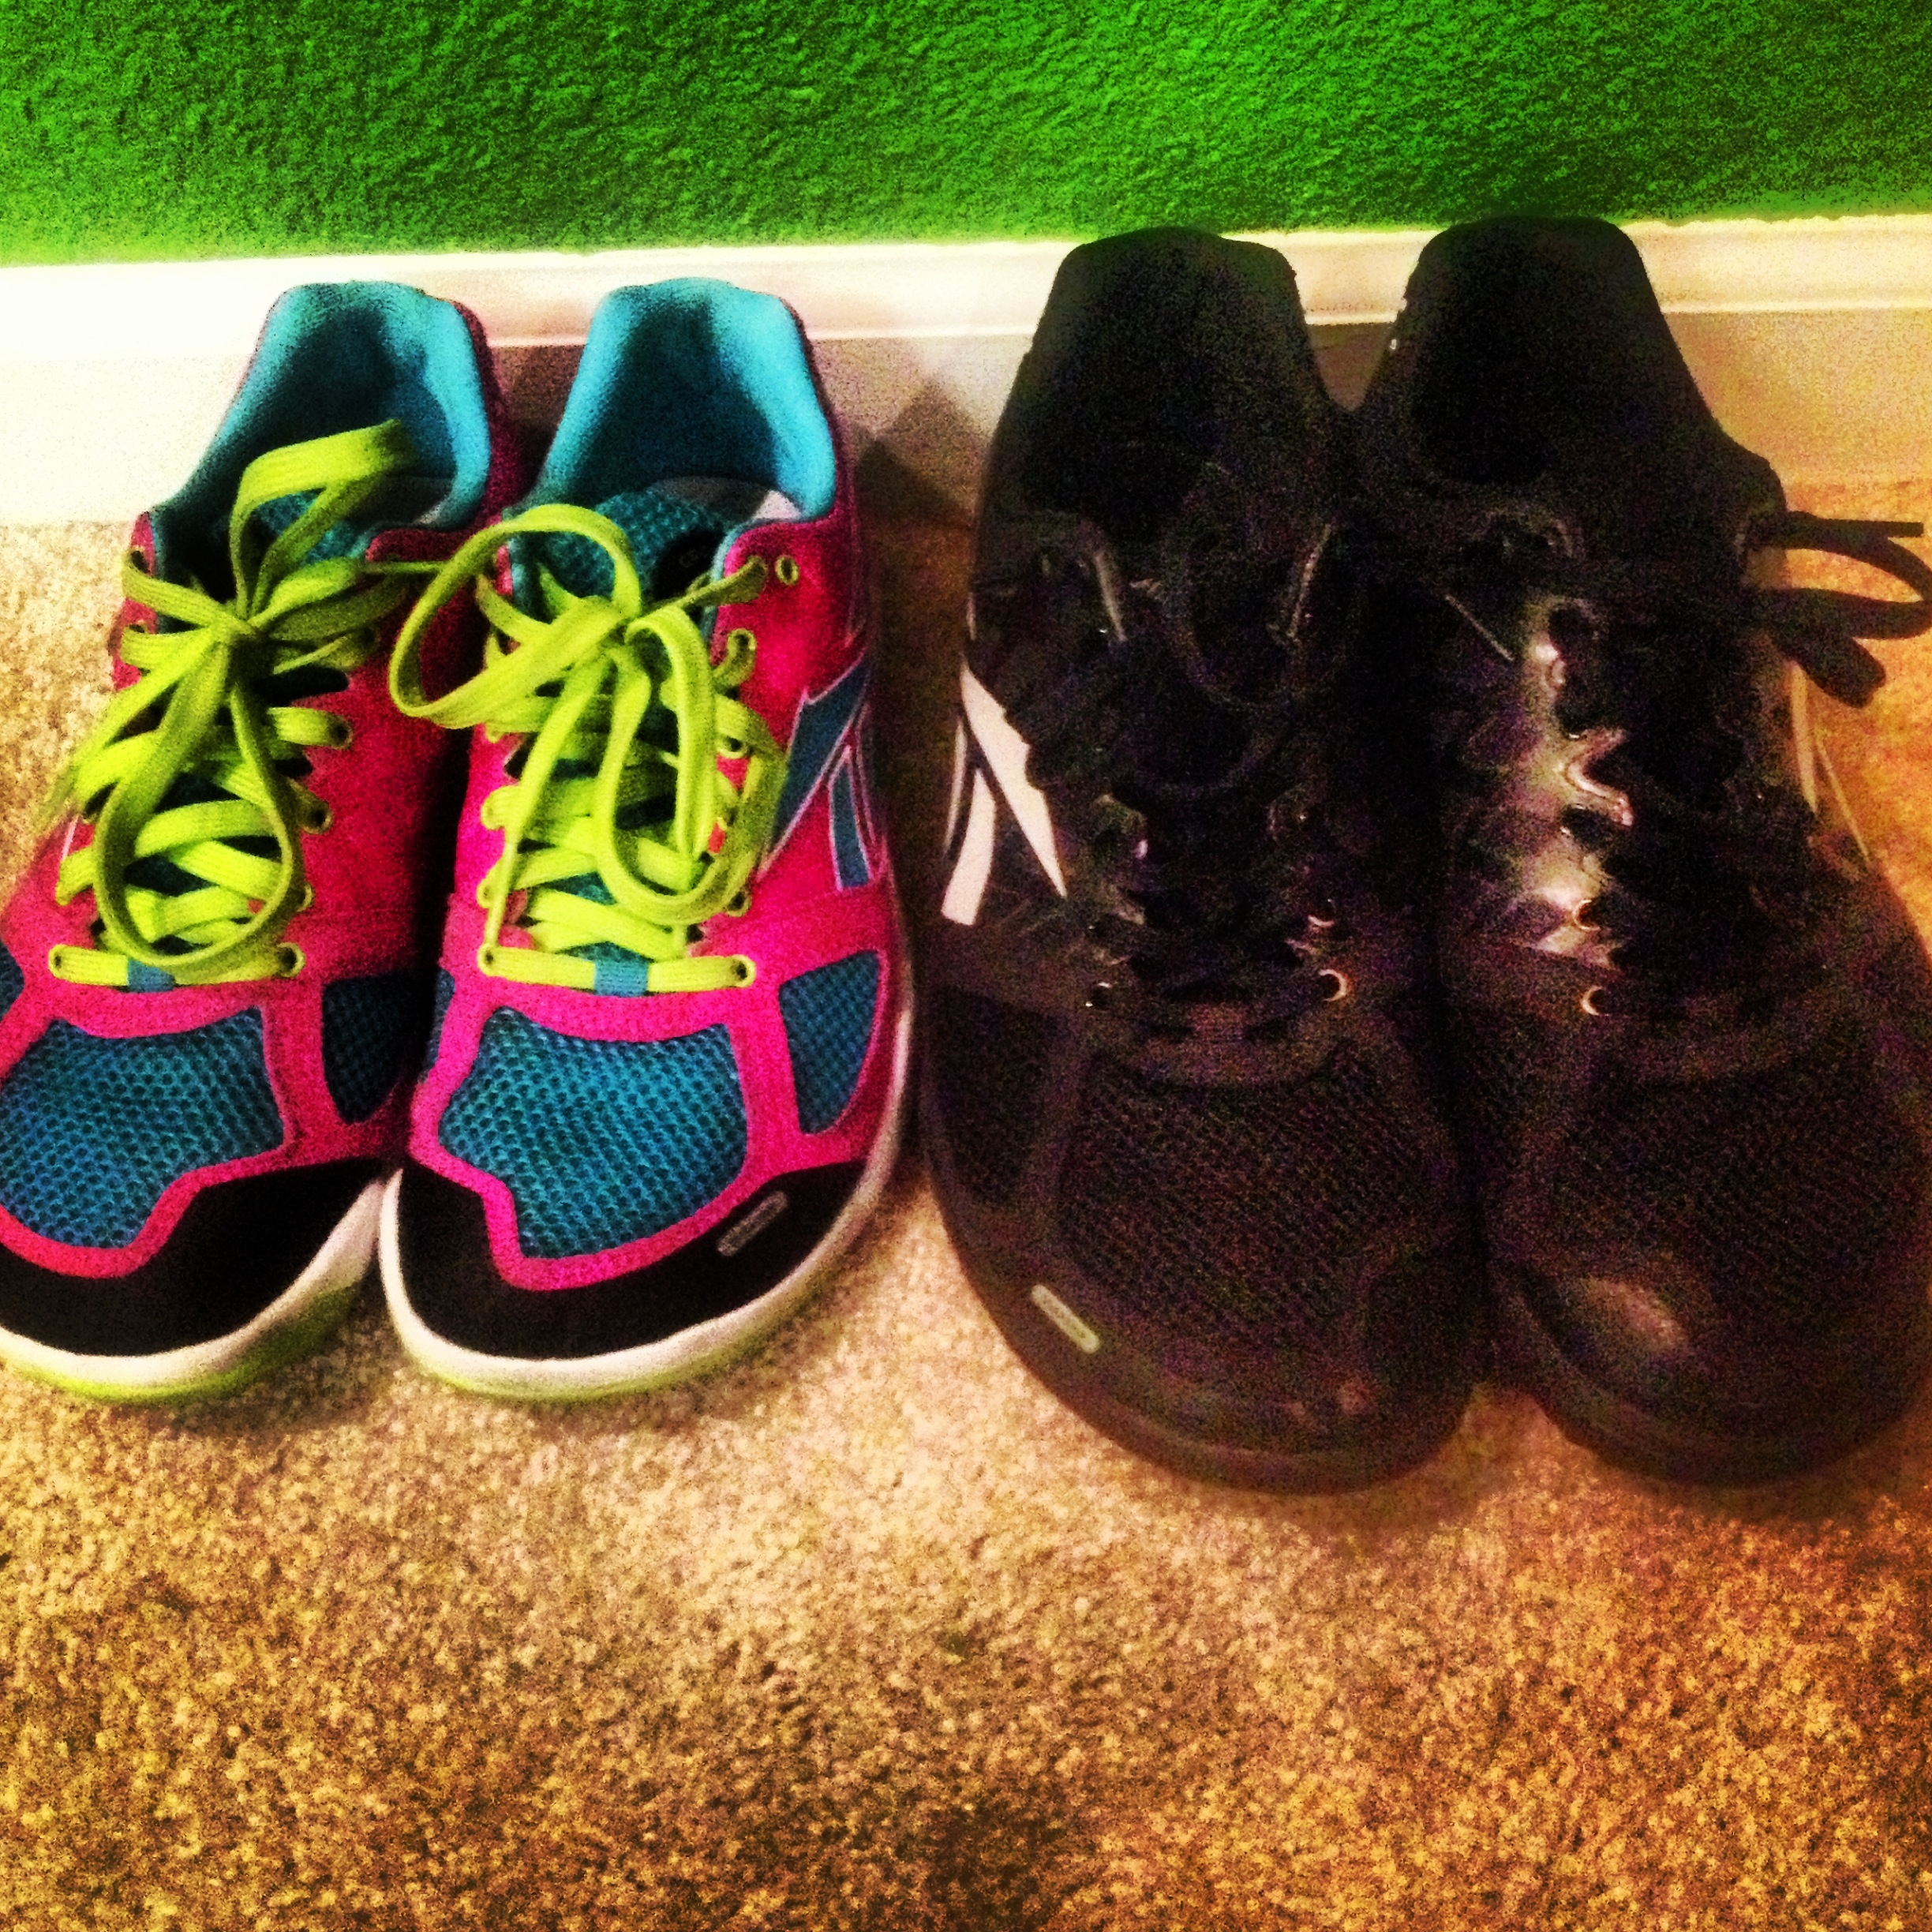 nanos his and hers